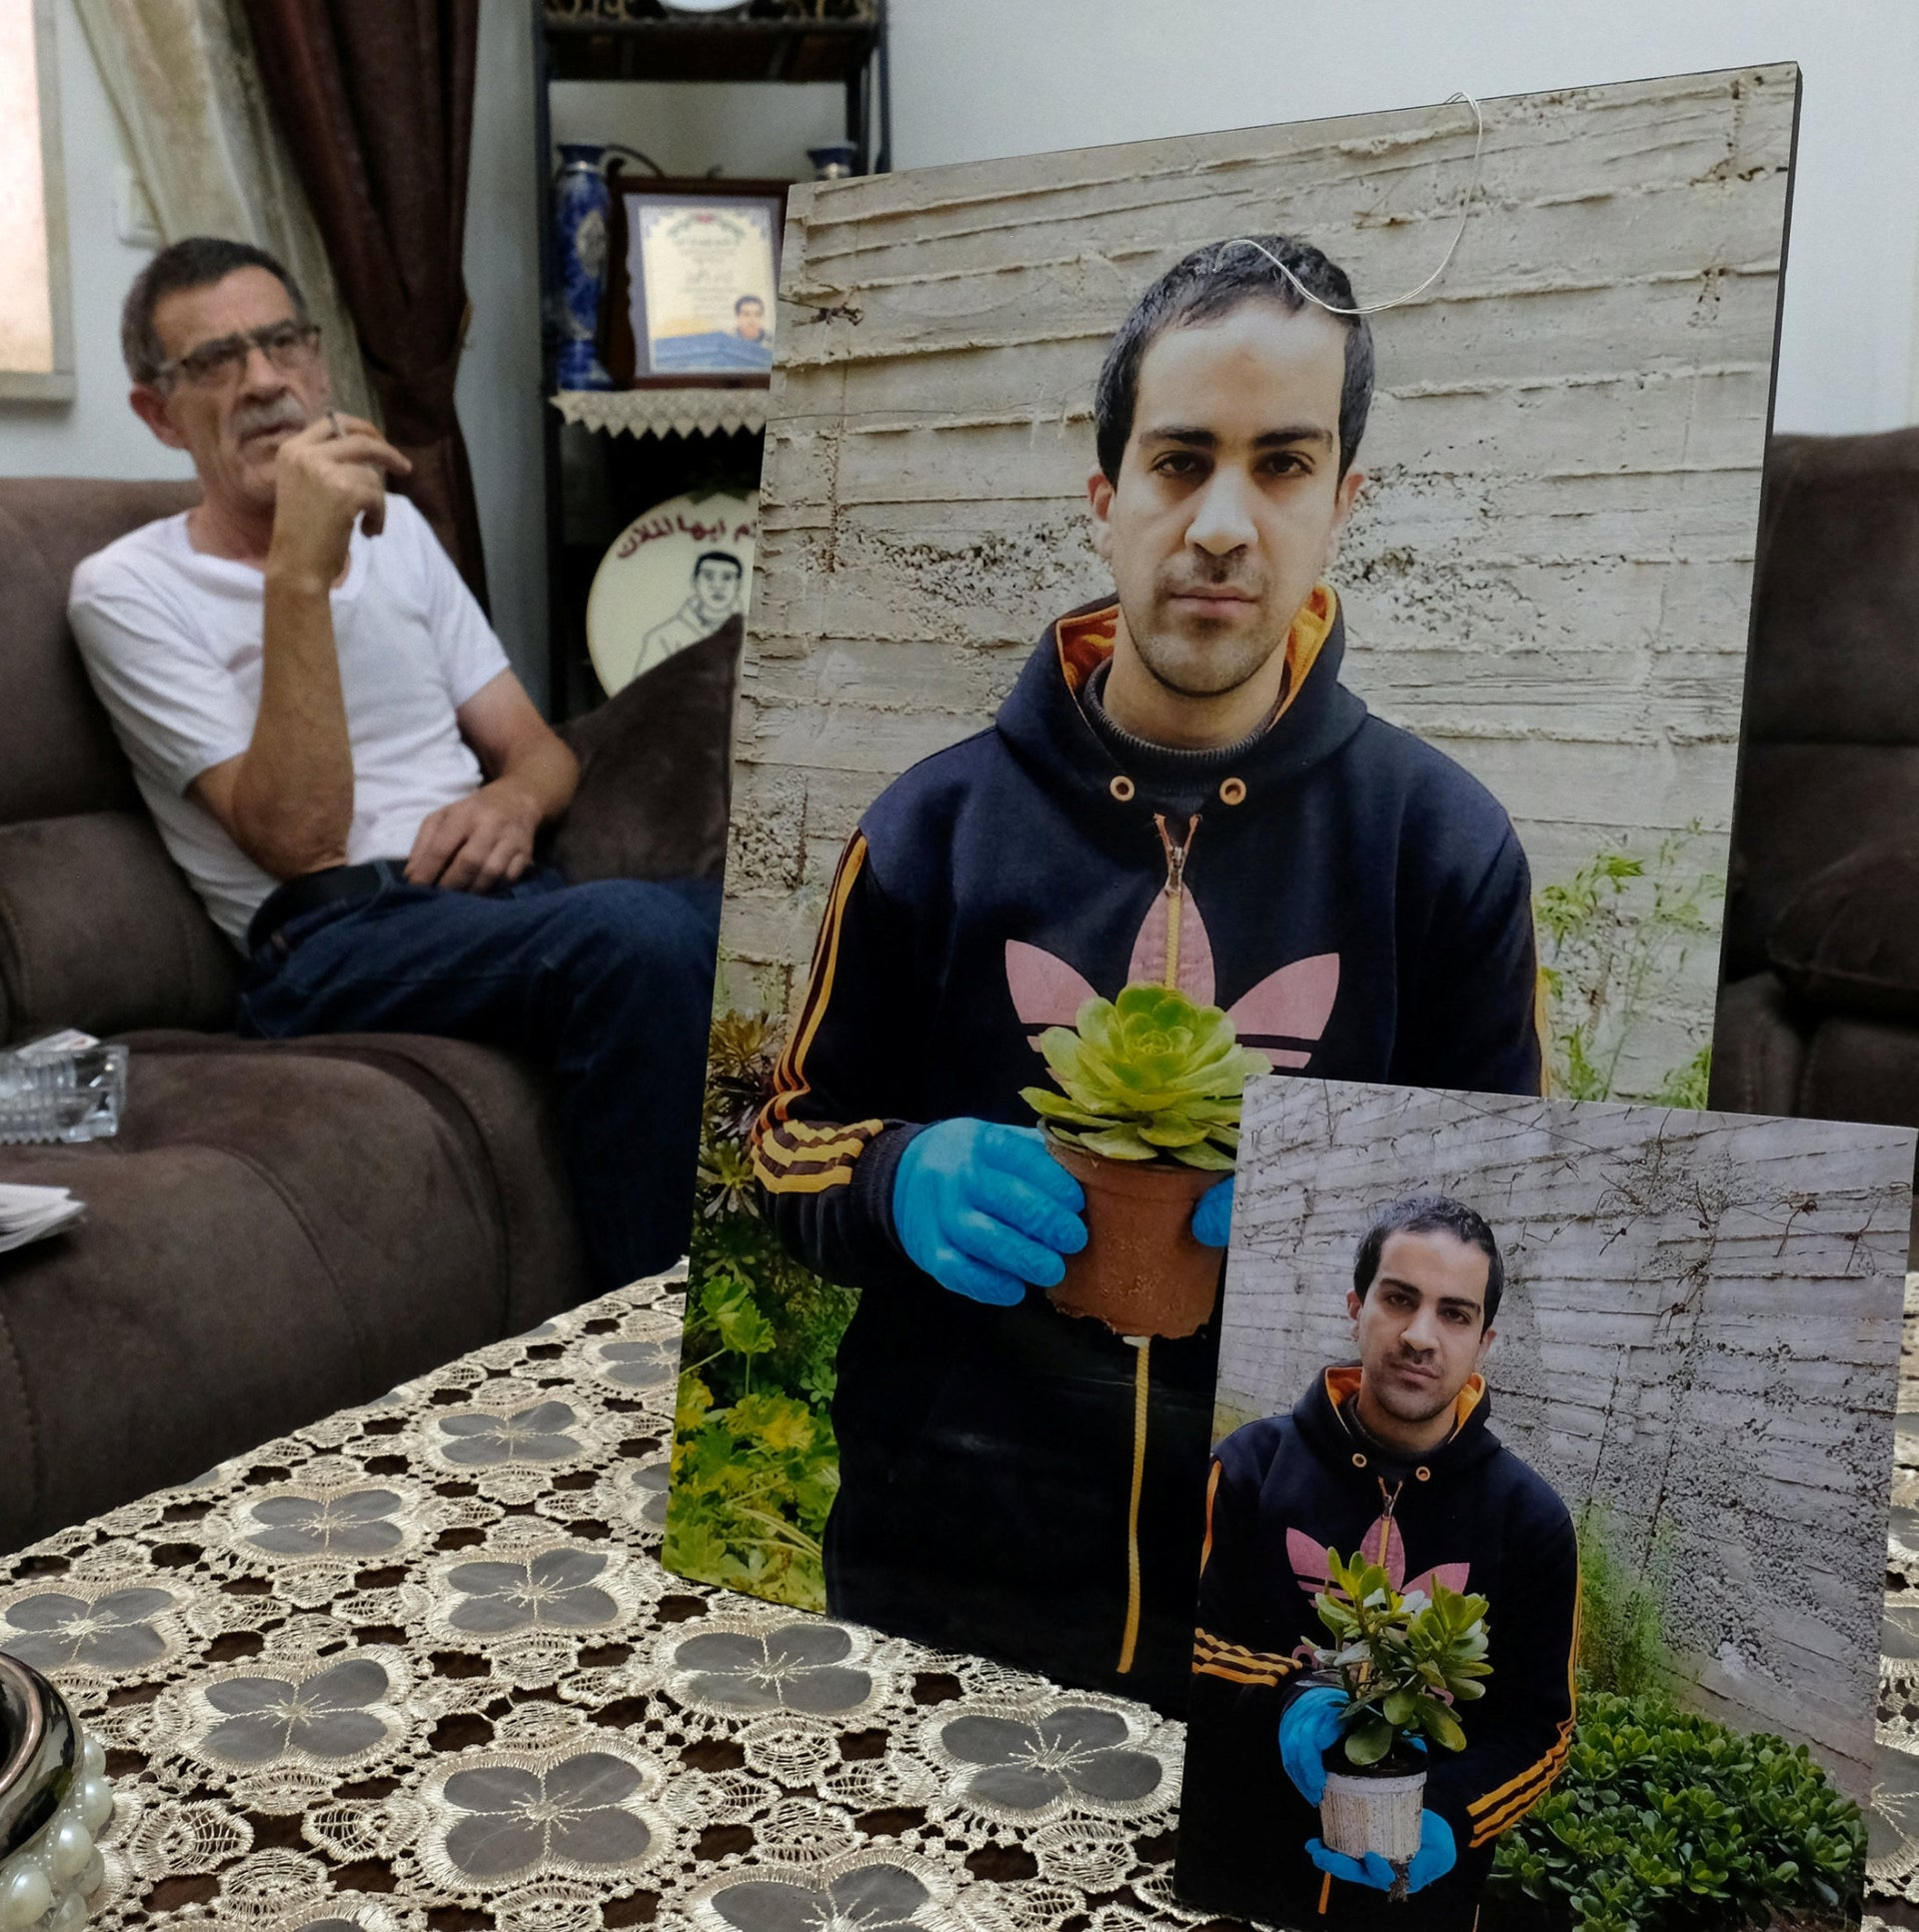 Khairy Hallaq at home, with photos of his son, Eyad.